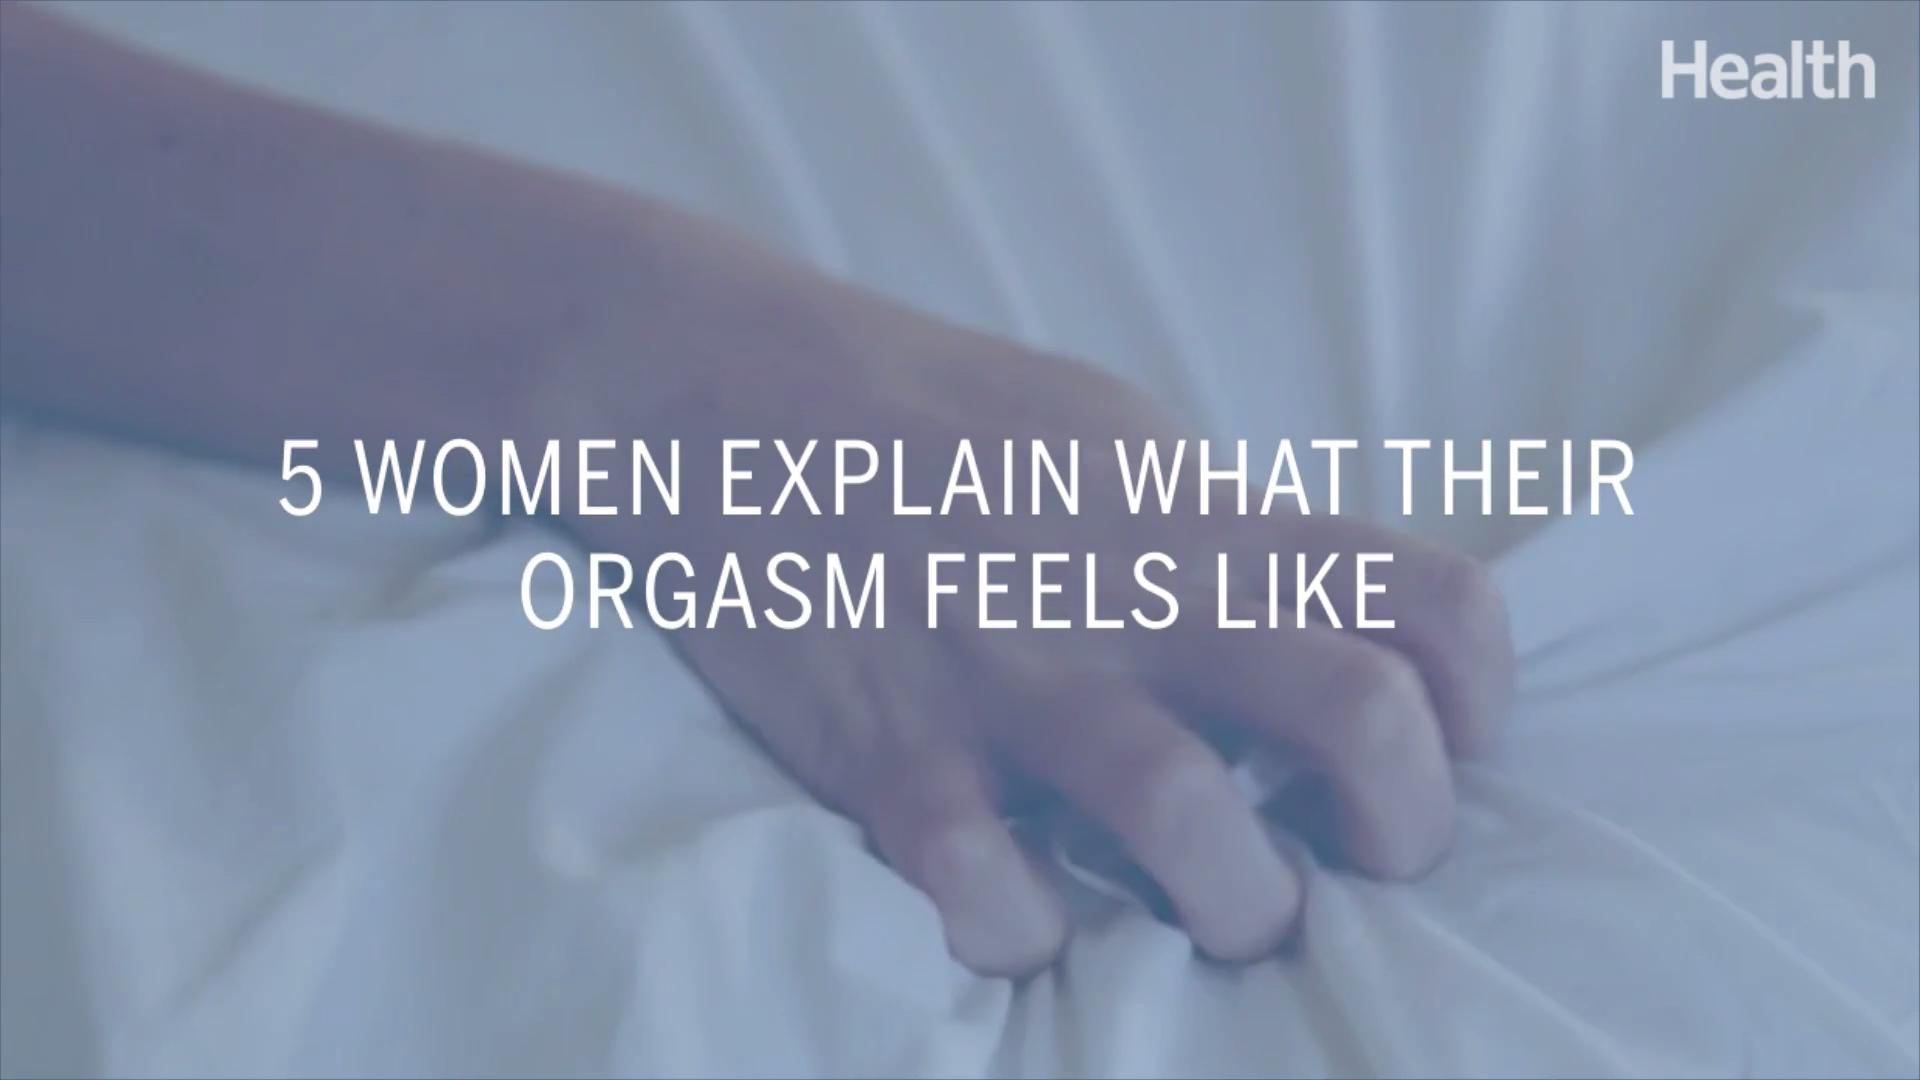 10 Mind-Blowing Facts About the Female Orgasm